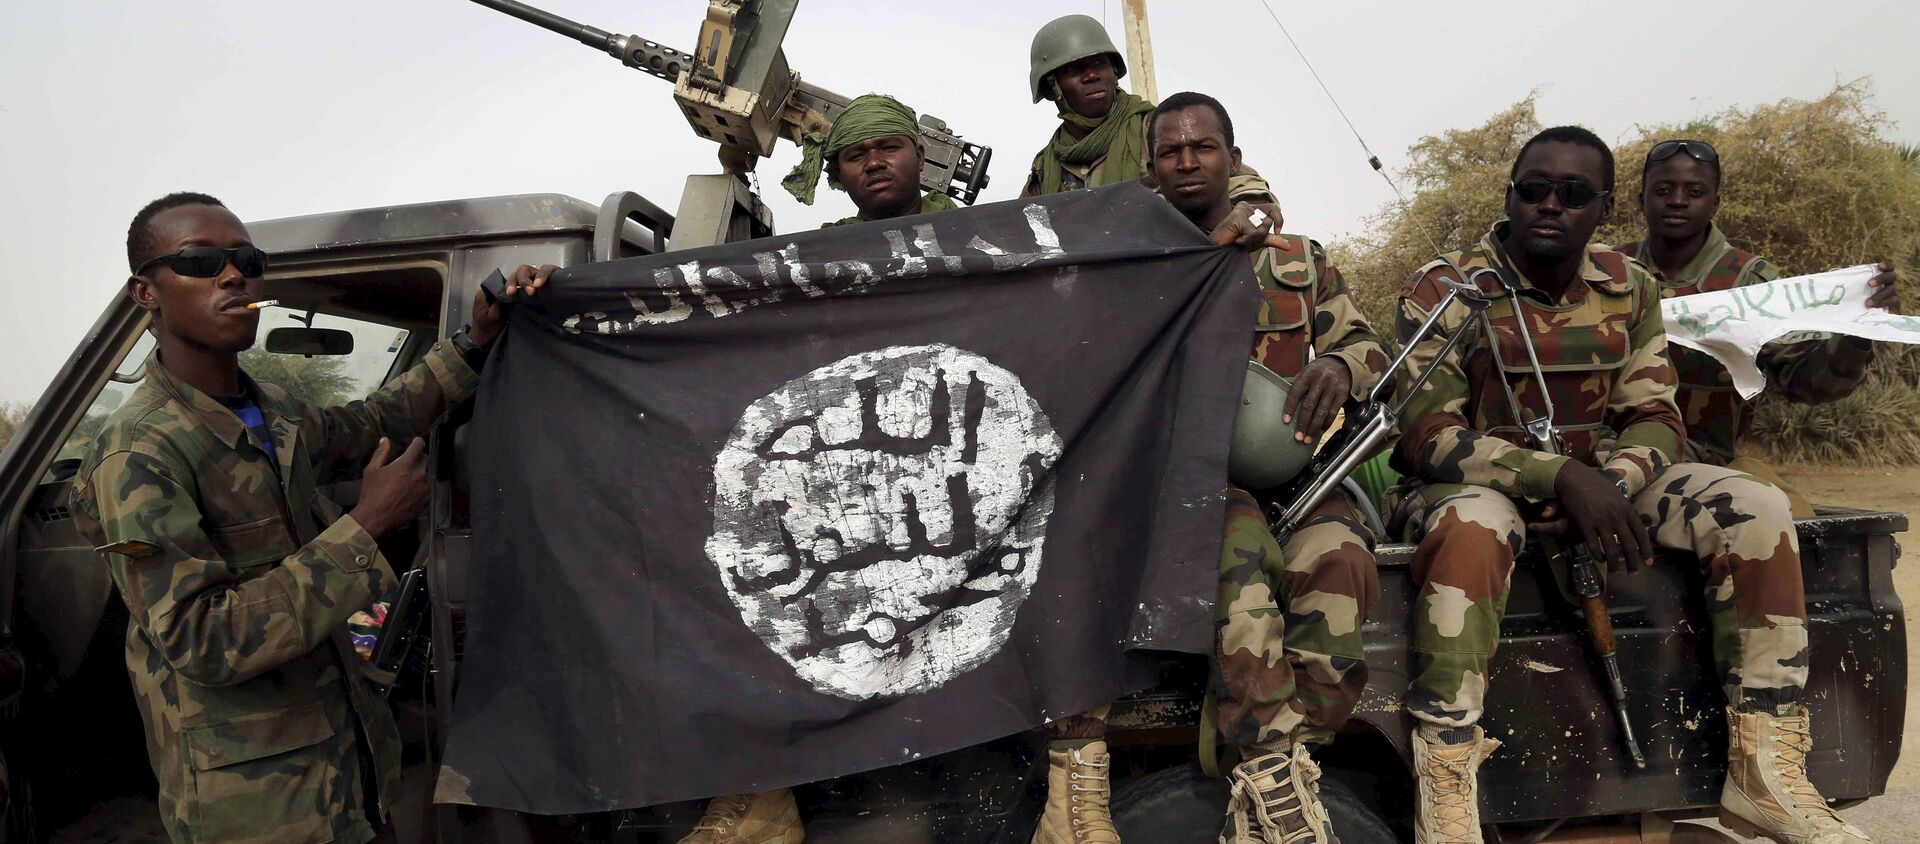 Nigerien soldiers hold up a Boko Haram flag that they had seized in the recently retaken town of Damasak, Nigeria, March 18, 2015 - Sputnik International, 1920, 24.07.2021